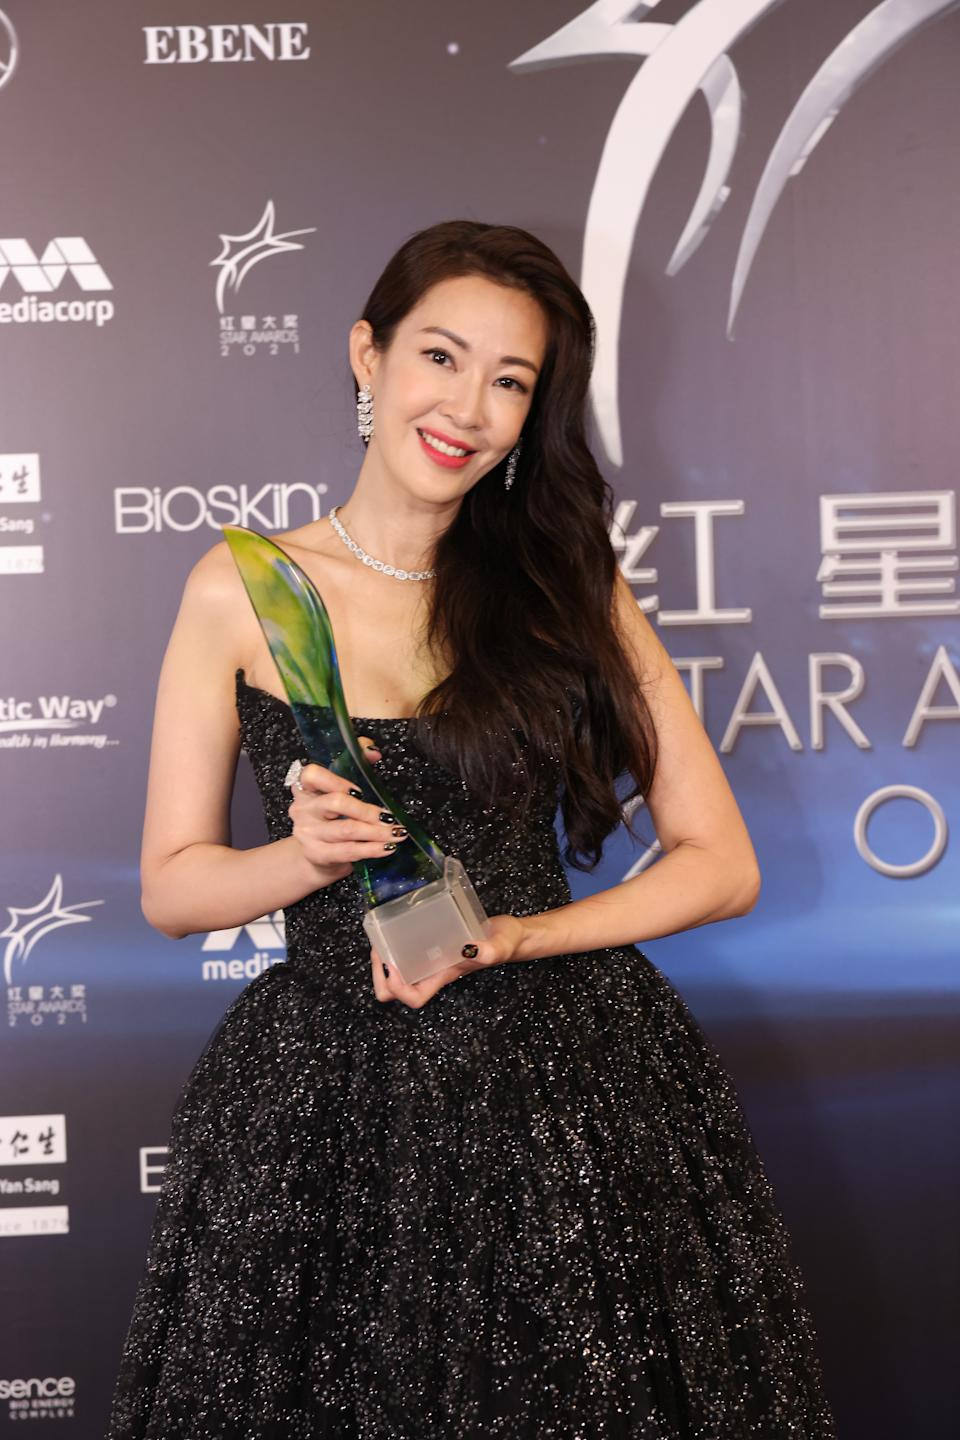 Jesseca Liu at Star Awards held at Changi Airport on 18 April 2021. (Photo: Mediacorp)